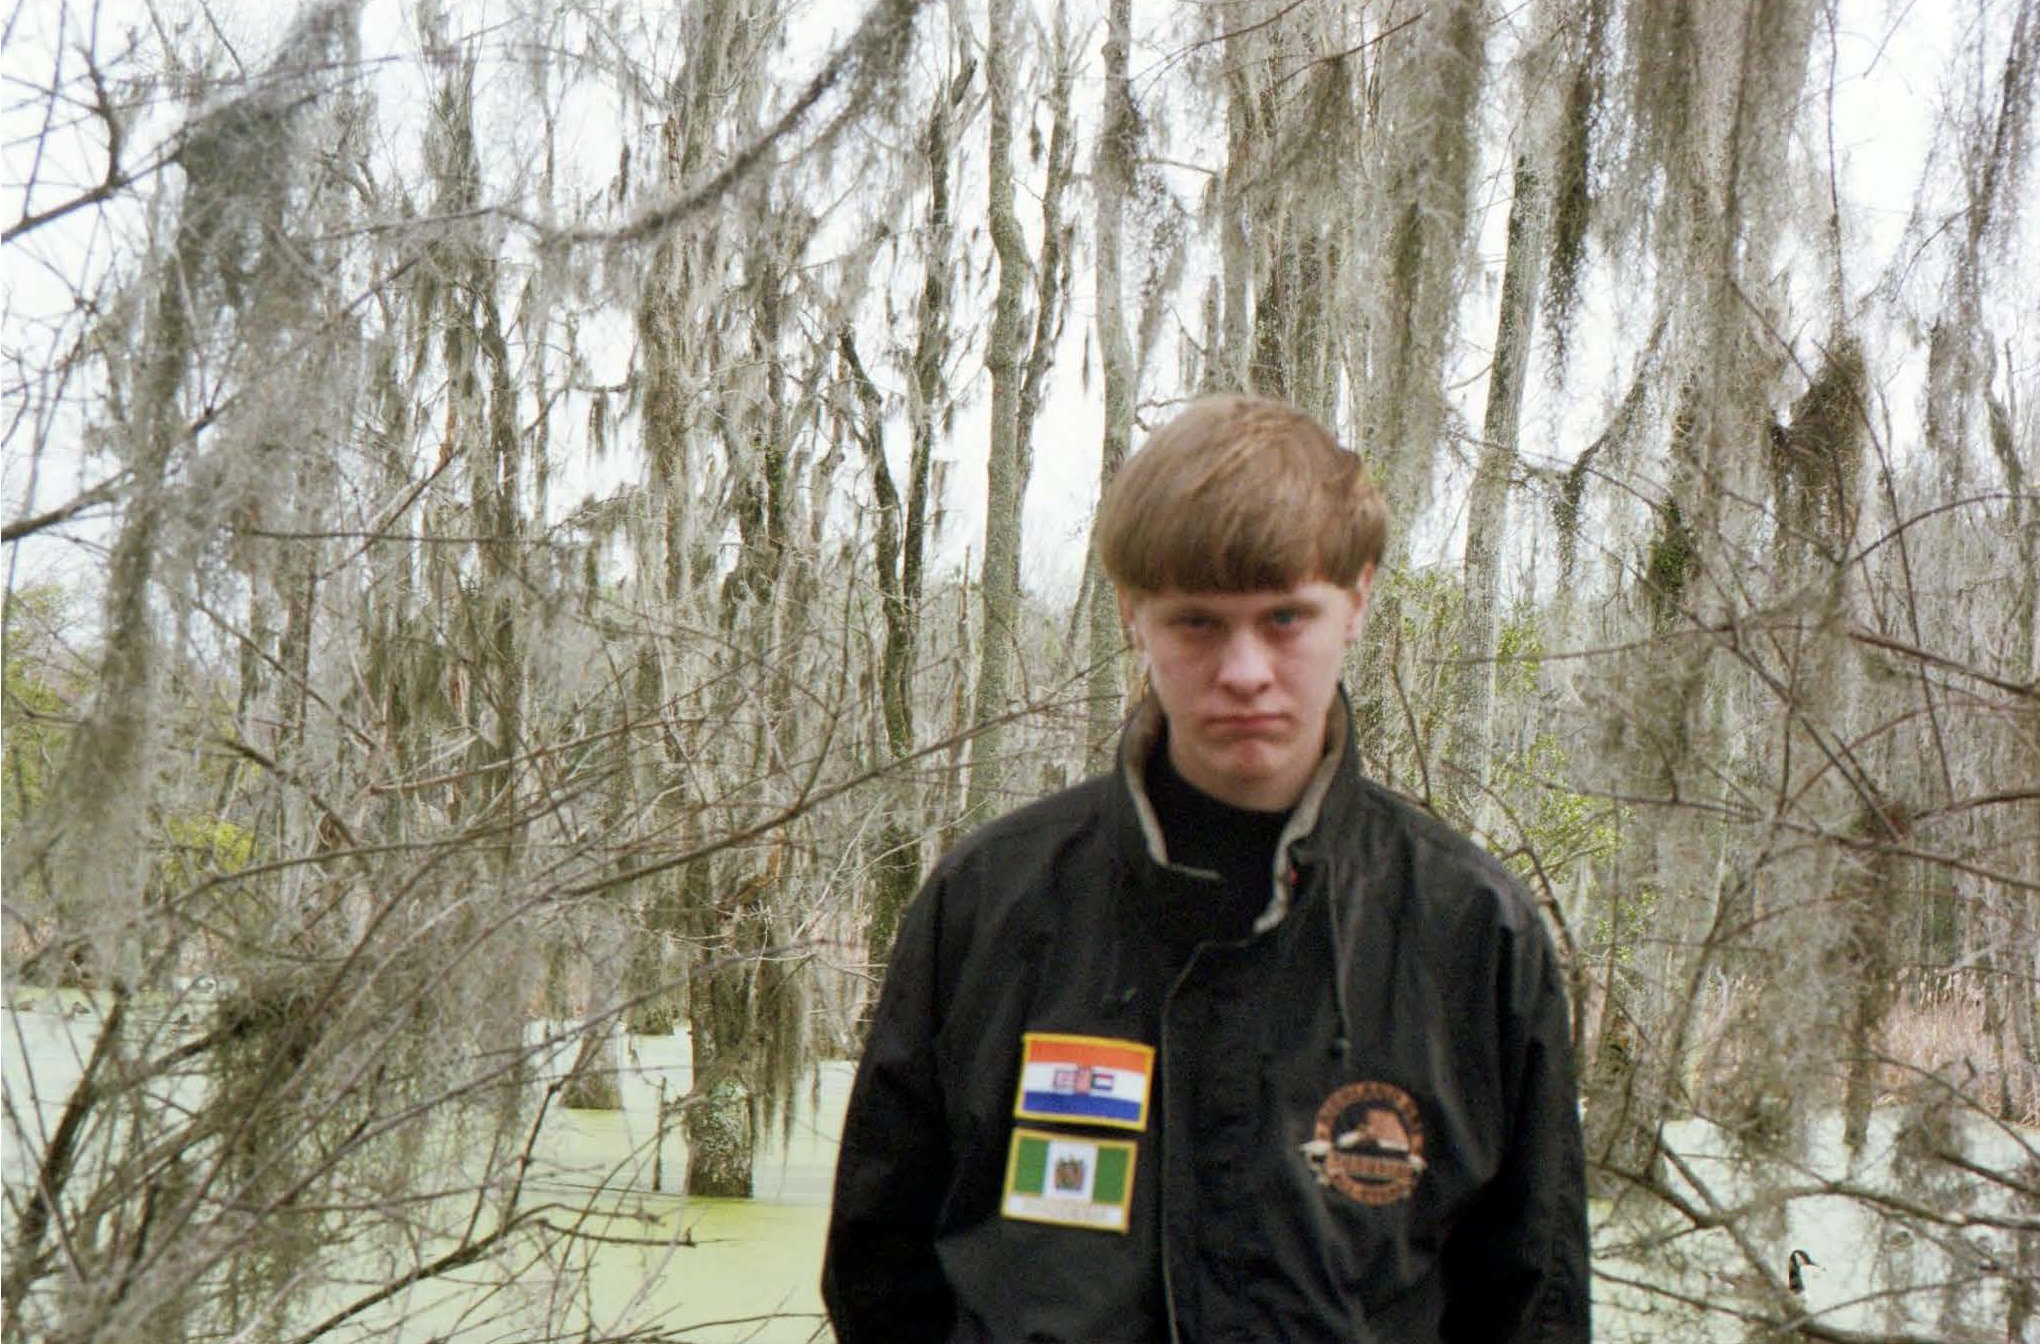 South Carolina church massacre shooting suspect Dylann Roof is seen in U.S. District Court of South Carolina evidence photo which was originally taken from Roof's website.